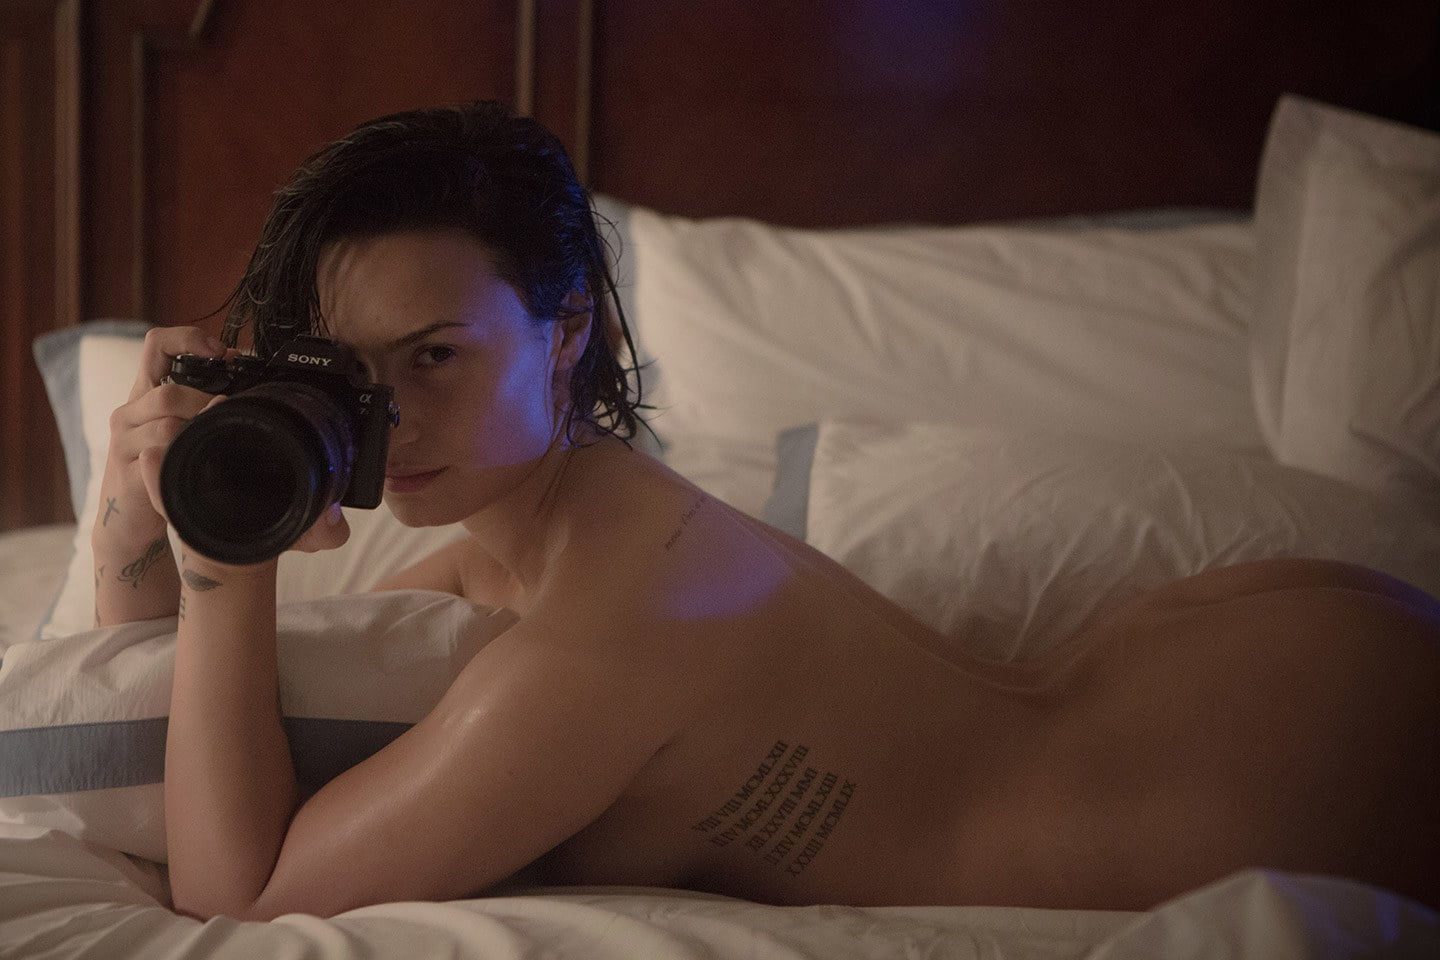 Demi Lovato on her back taking a naked selfie on a bed with a camera